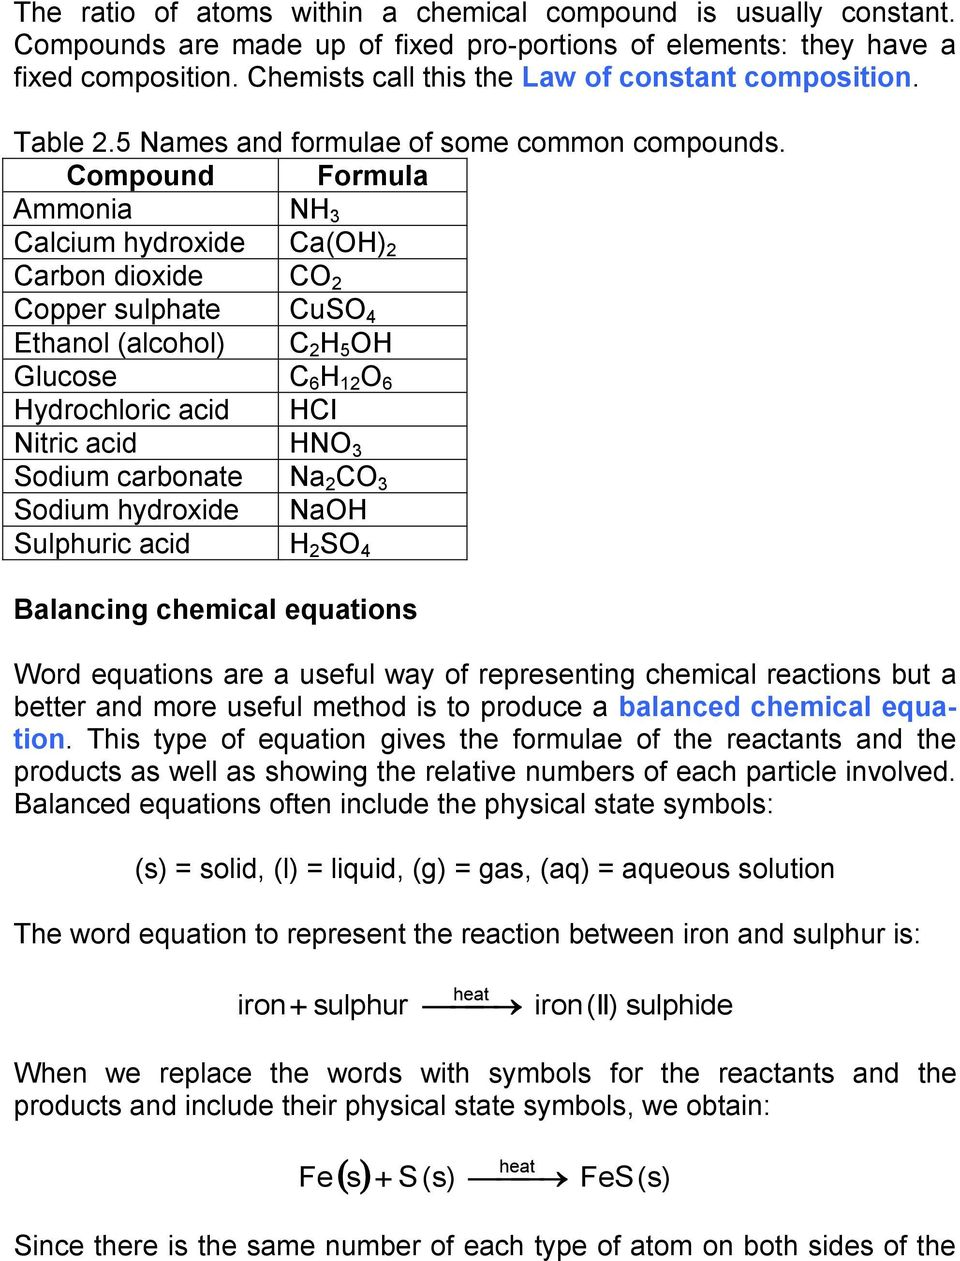 Chapter 2 Elements Compounds And Mixtures Pdf